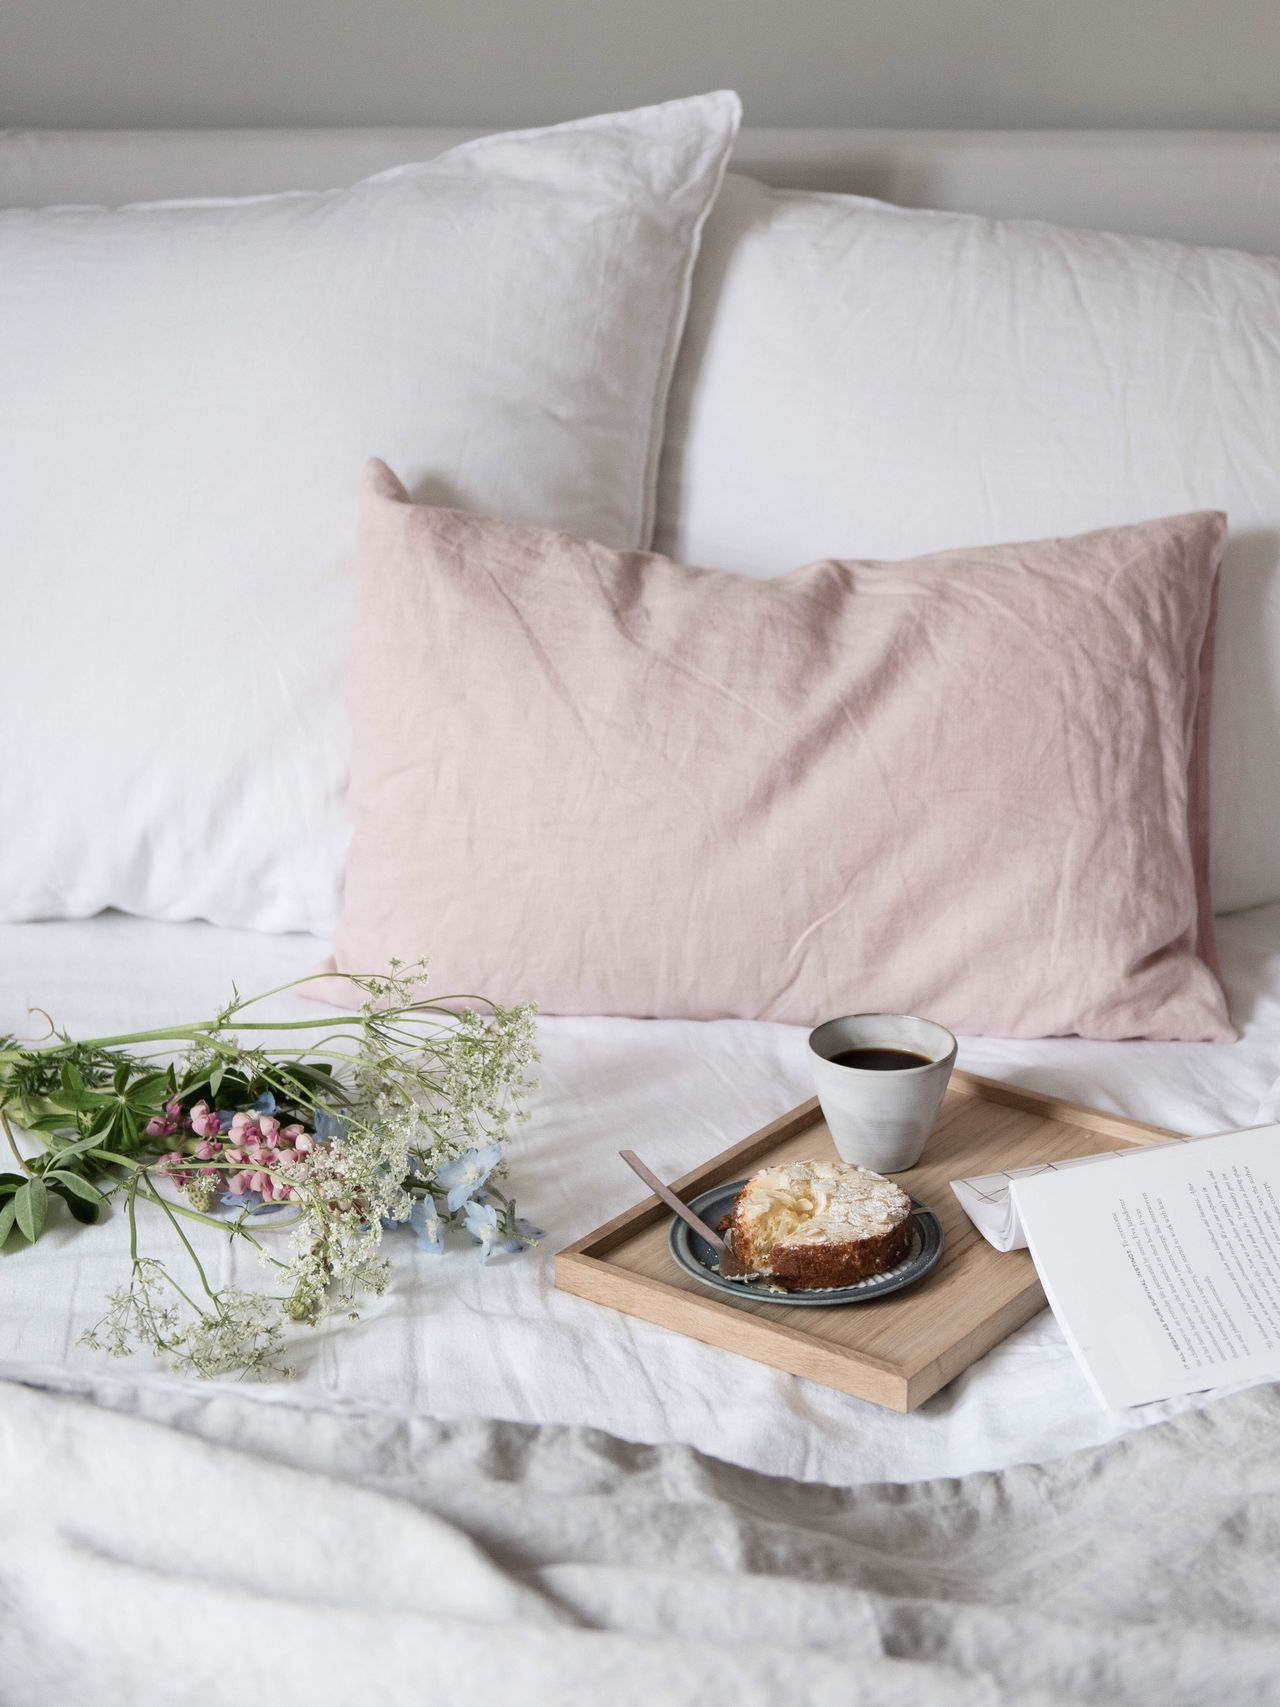 Breakfast Breakfast in Bed breakfast time slow life interior indoors Bed home interior bedroom Pillow no people Food and Drink coffee - drink coffee cup newspaper Domestic life linen visual feast Weekend TheWeekOnEyeEM Still Life Photography StillLifePhotography croissant day Breakfast Fresh on Market 2017